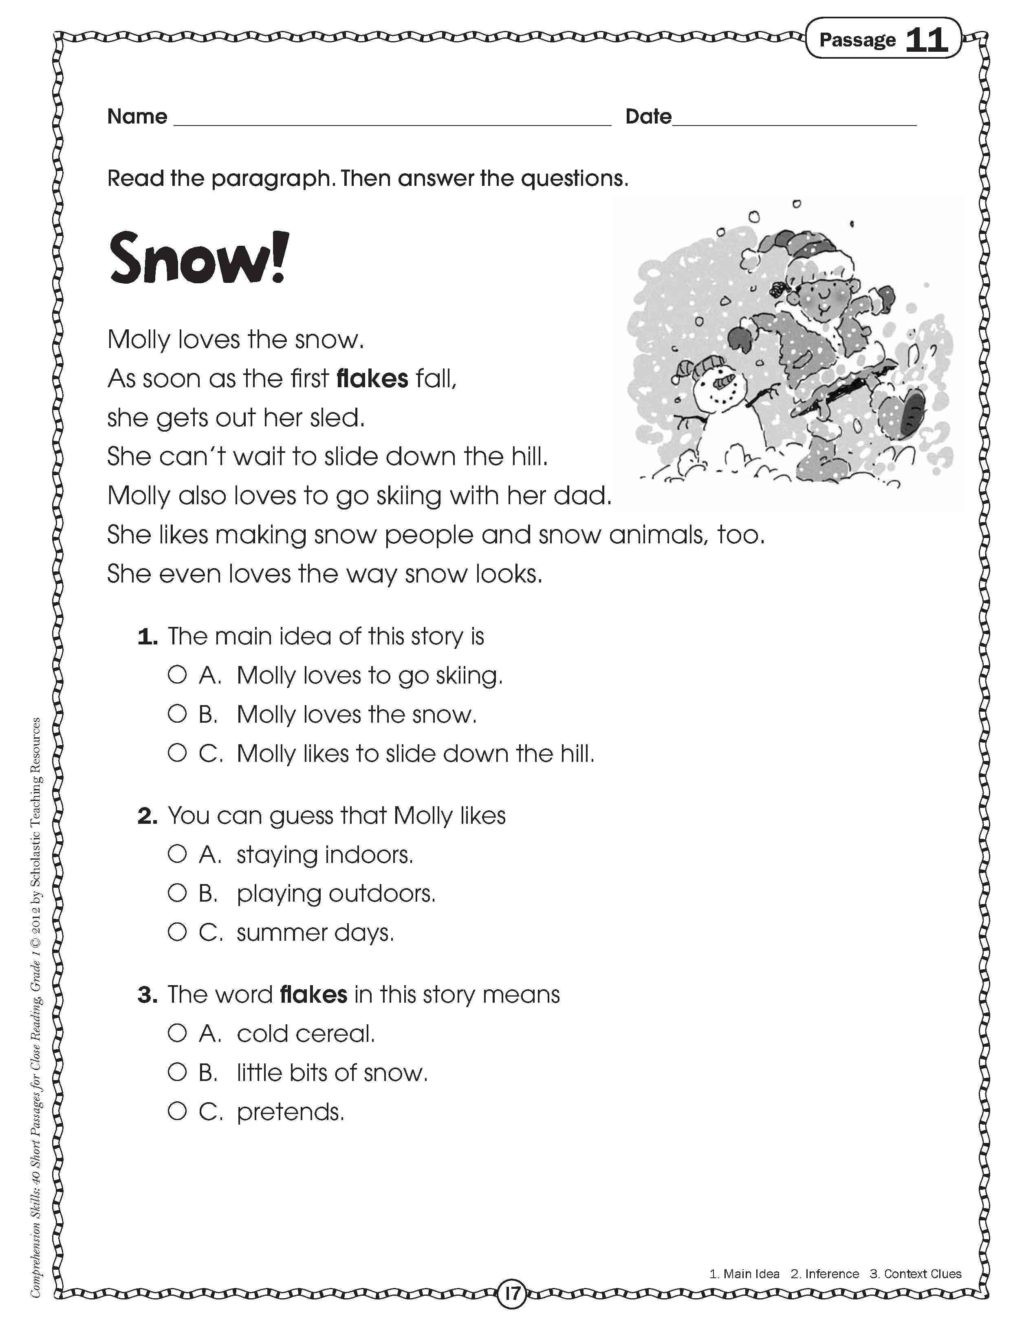 Making Inferences Worksheet 4th Grade Worksheet Fabulousn Worksheets Grade Fun Printable and